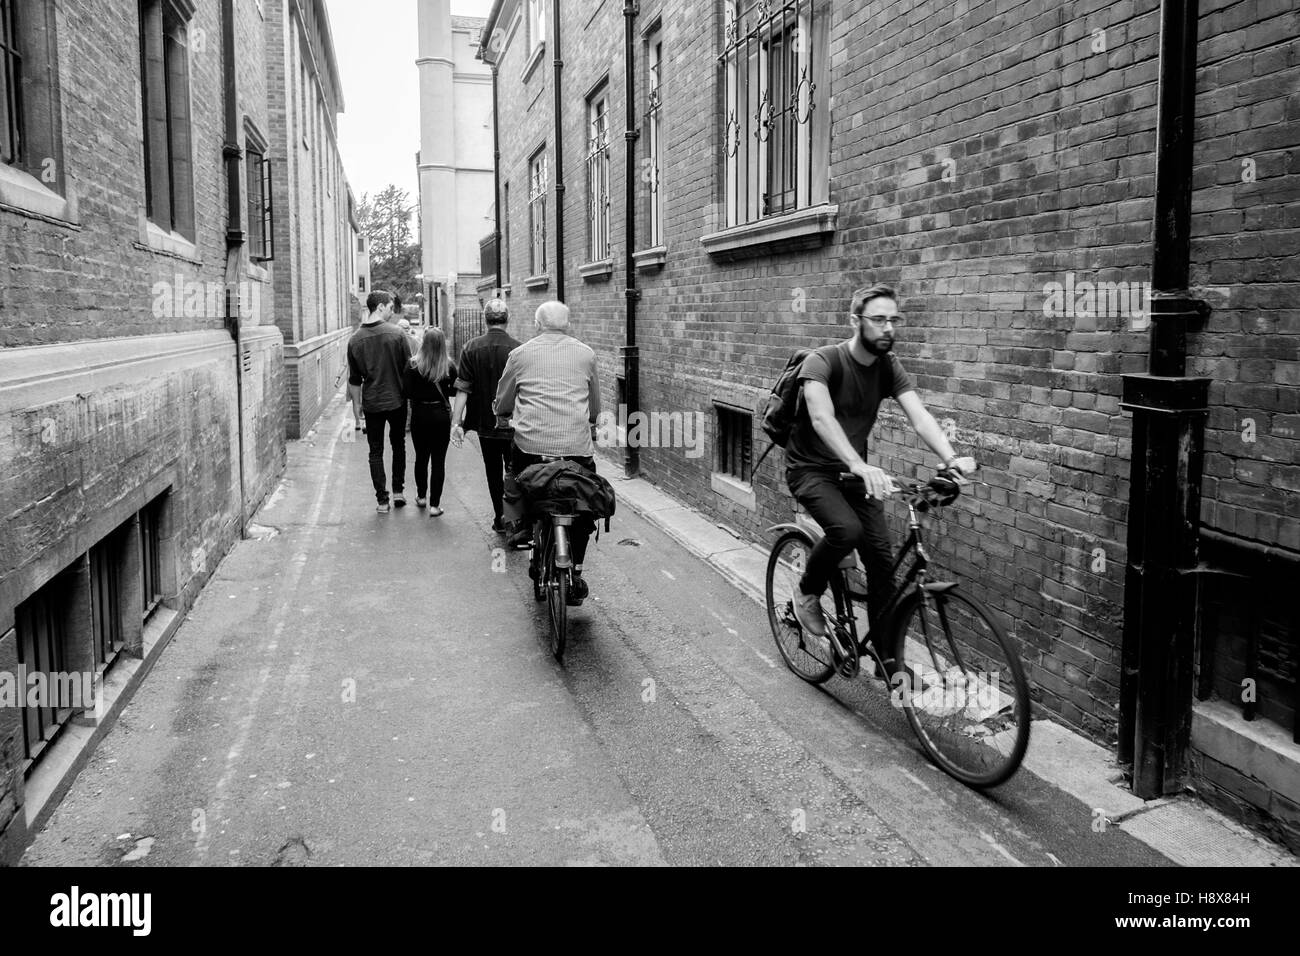 Cyclist cambridge alley alleyway back road wide angle black and white bearded hipster - Stock Image